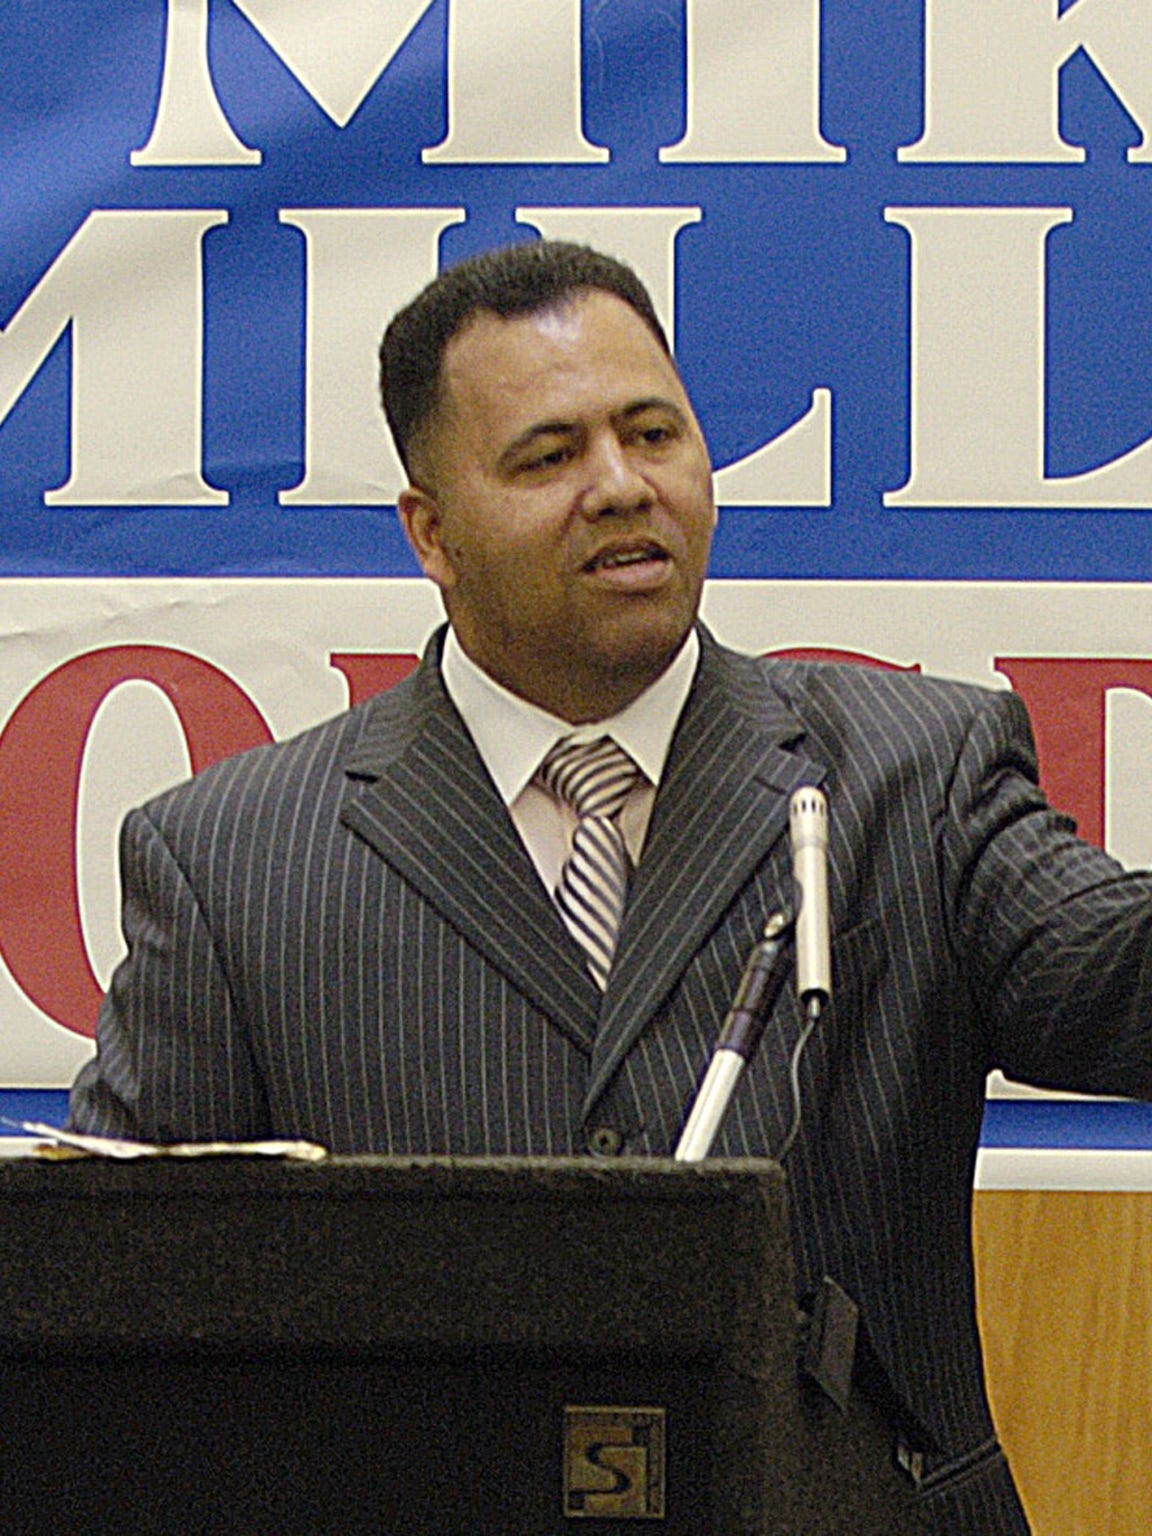 Mike Miller is shown in April 2008. He is running for Congress.